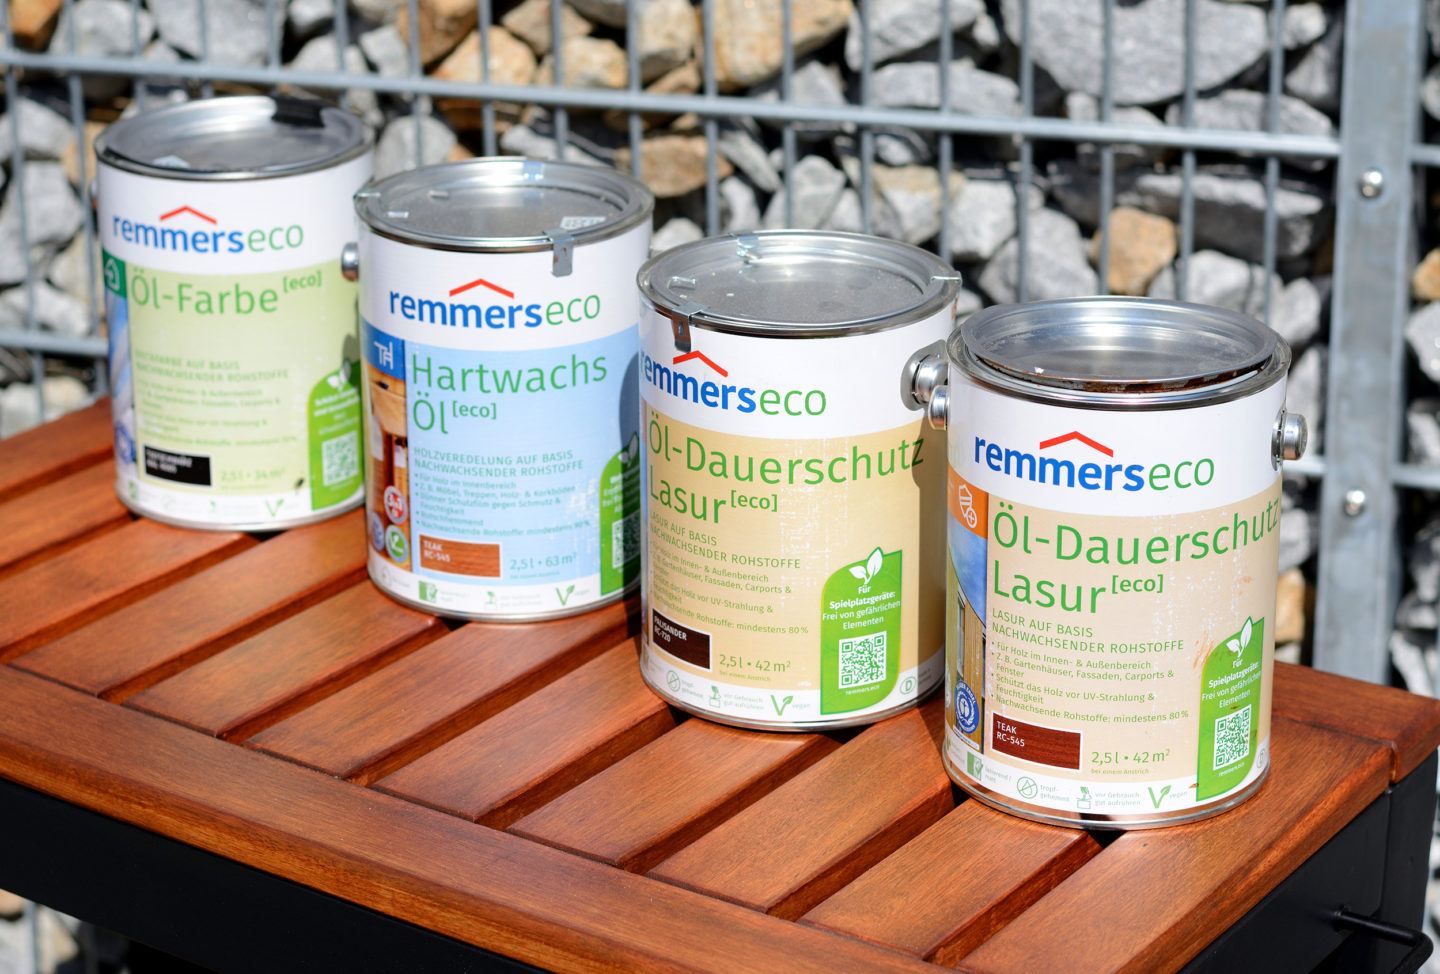 Remmers eco Produkte